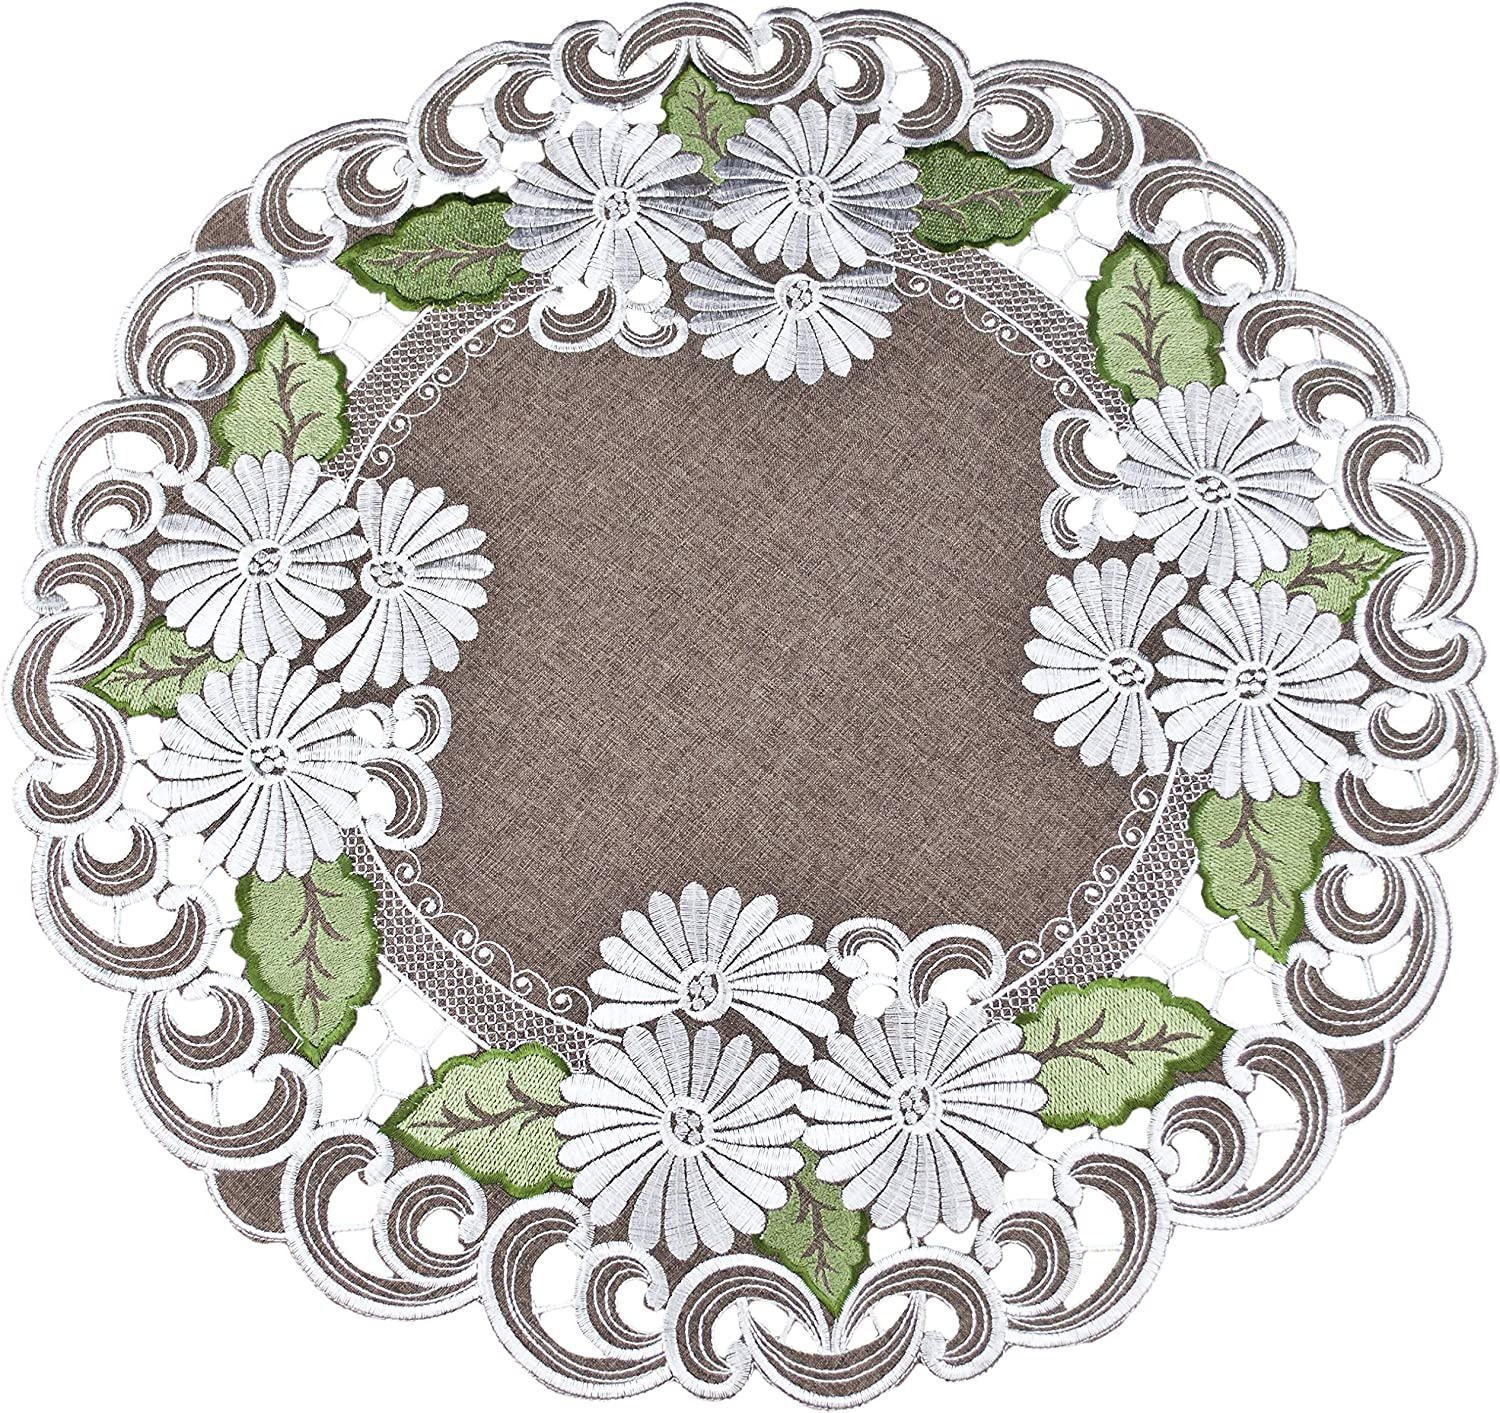 Small Tablecloth Centerpiece Large Doily a Silv Embroidered Max 77% OFF Max 47% OFF with